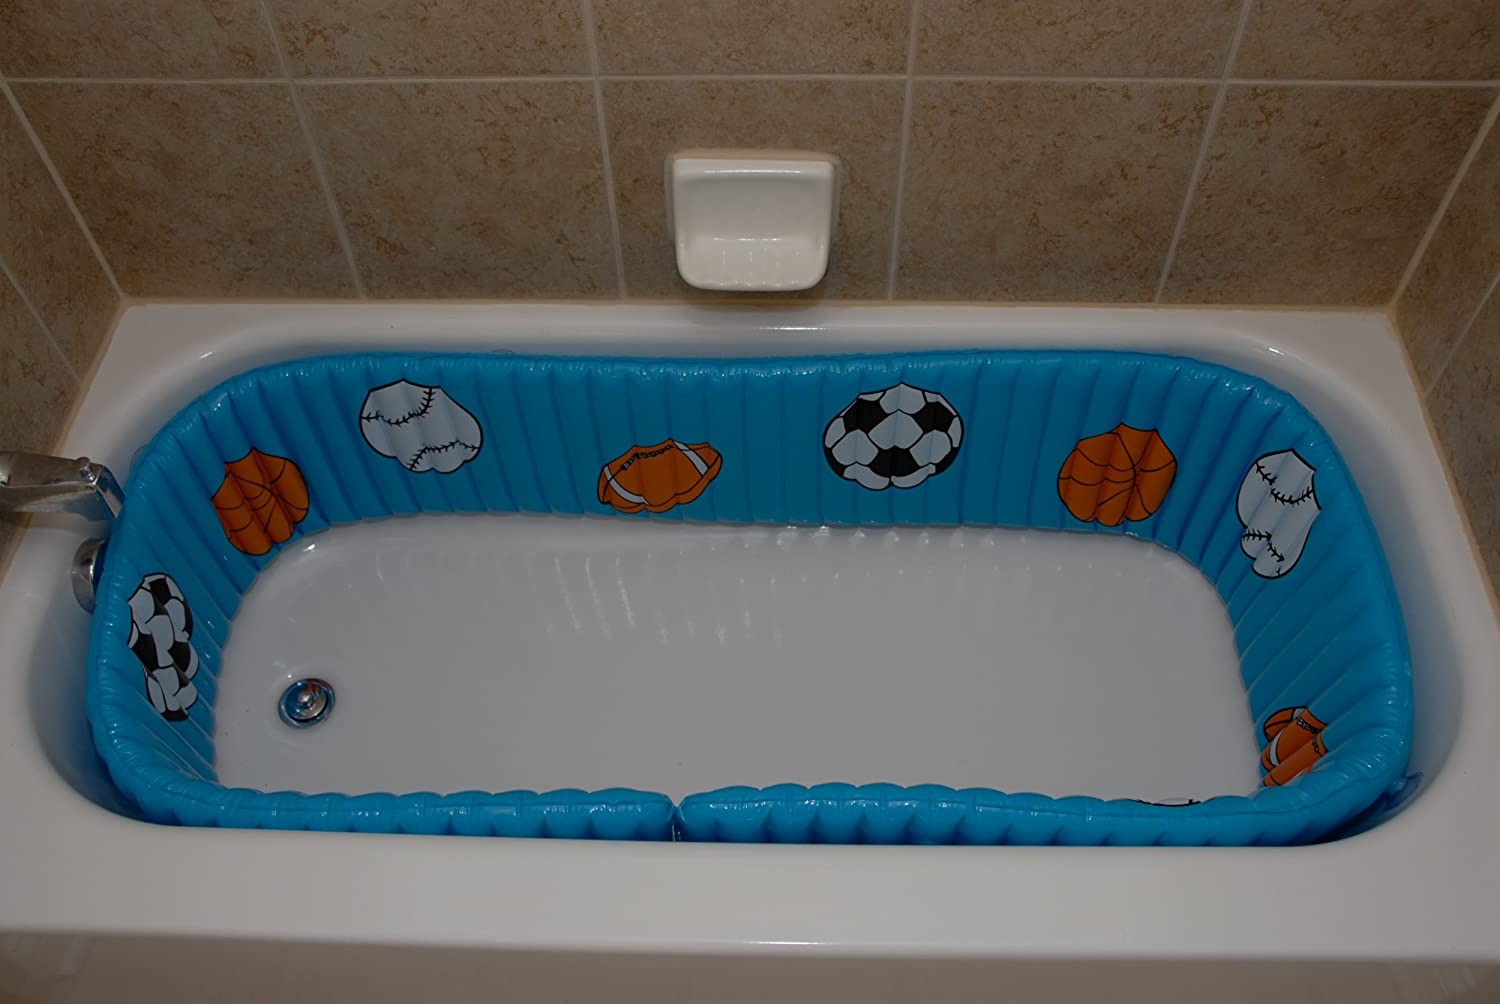 Amazon.com : Tub-Time Bumpers Sport Inflatable Bathtub Liner ...